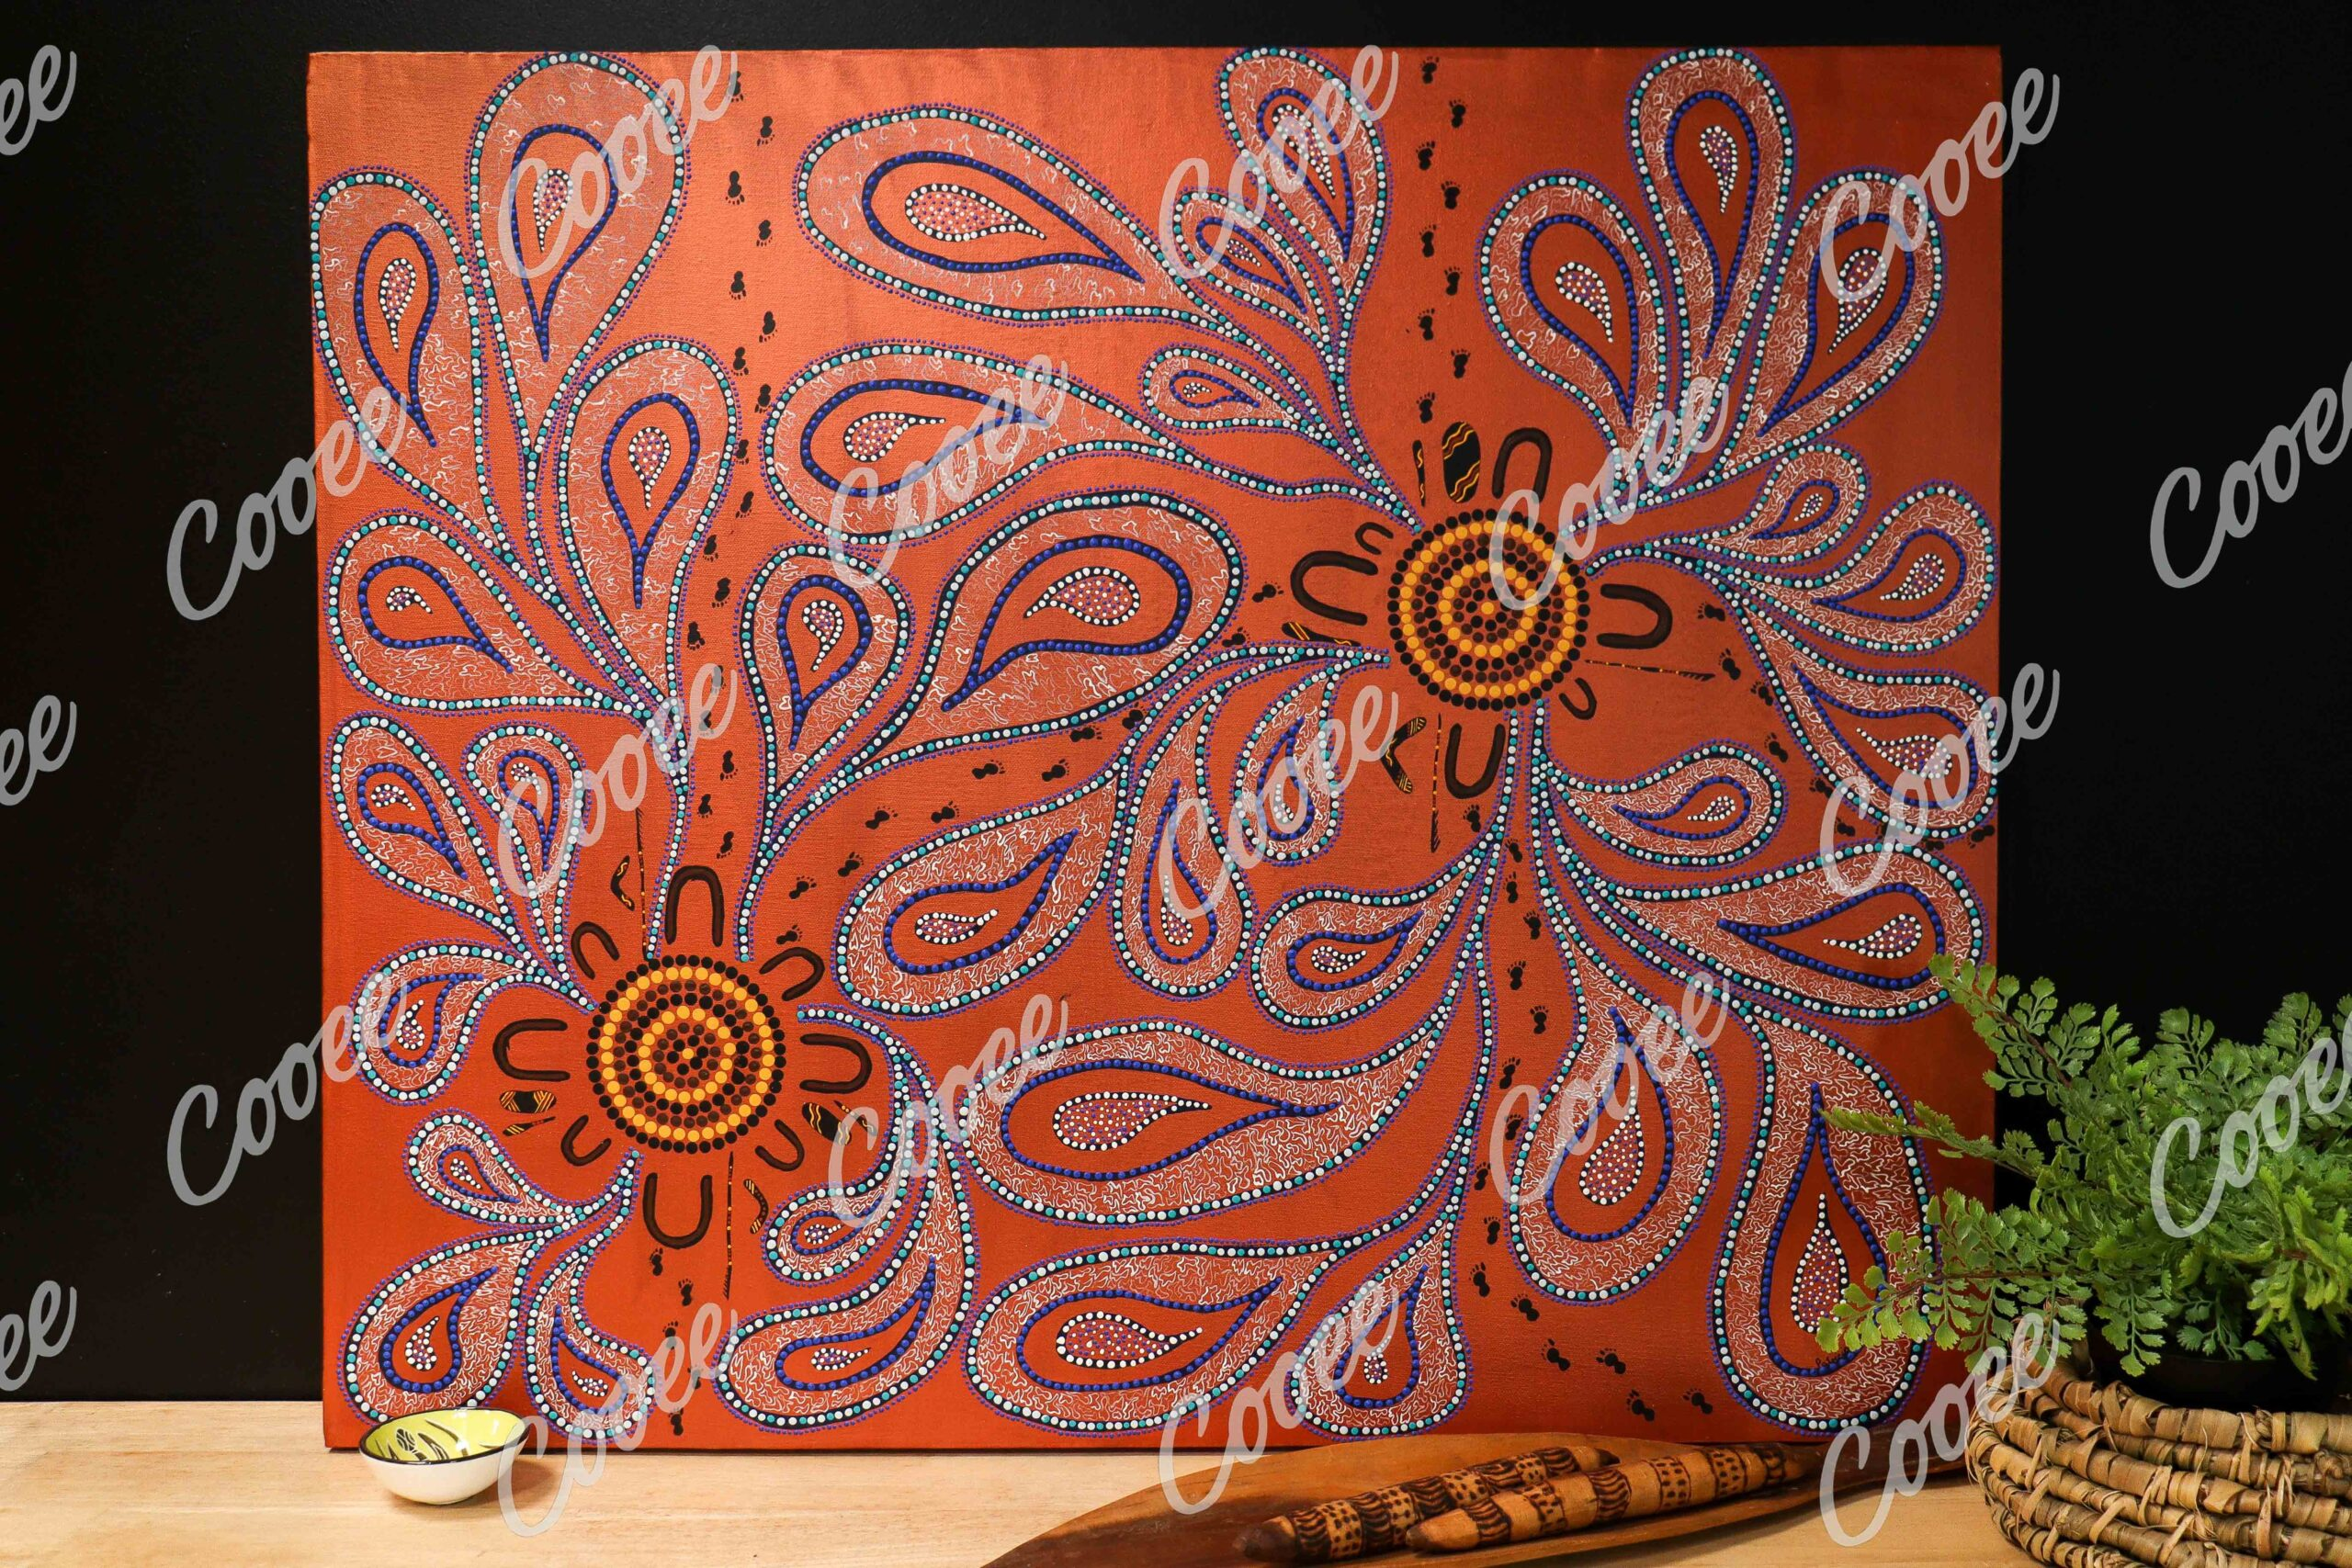 Cooee-Cafe-Original-Indigenous-Painting4